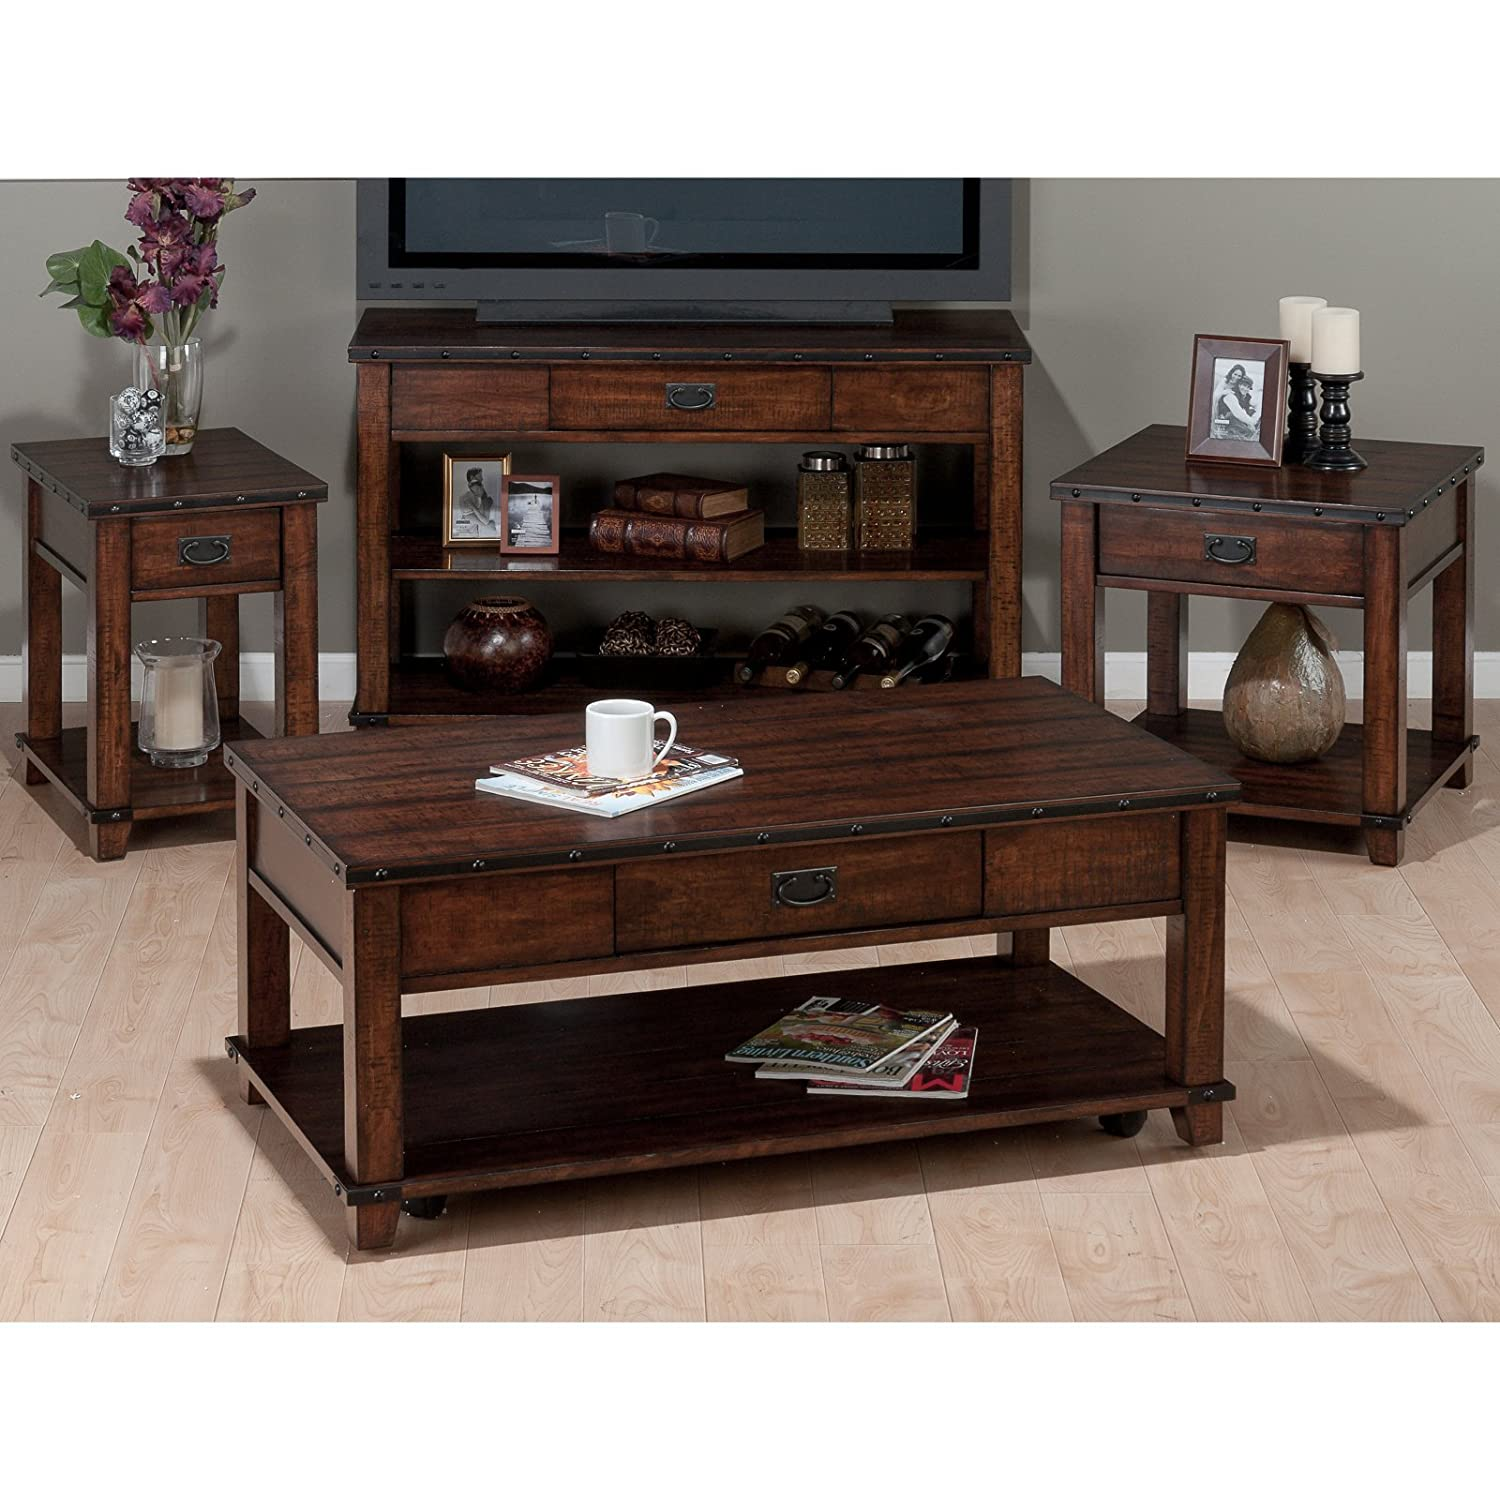 Amazon Chairside Table in Cassidy Brown Finish Kitchen & Dining